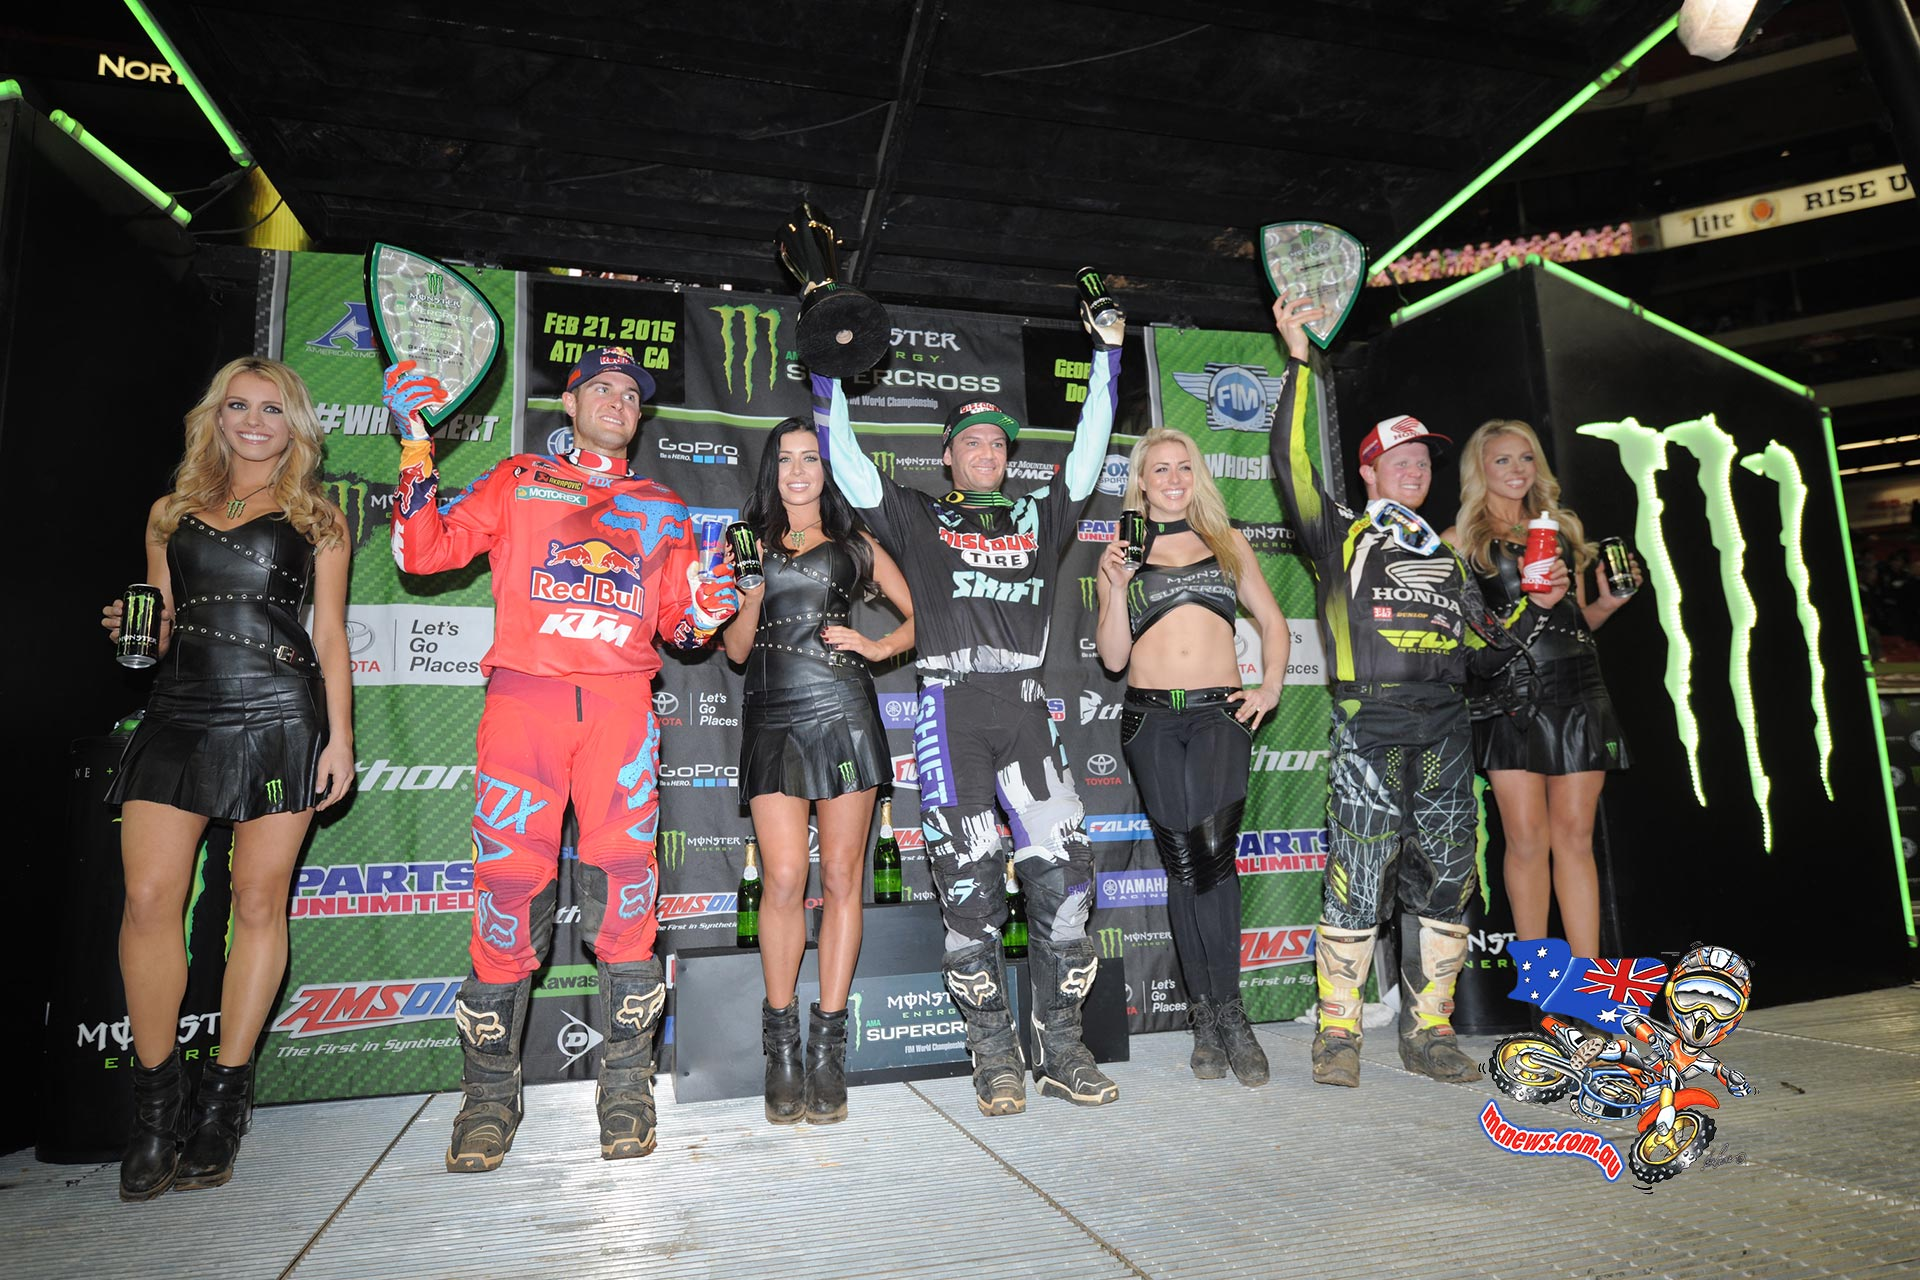 (From Left to Right) Dungey, Reed, and Canard celebrate on the podium in Altanta.